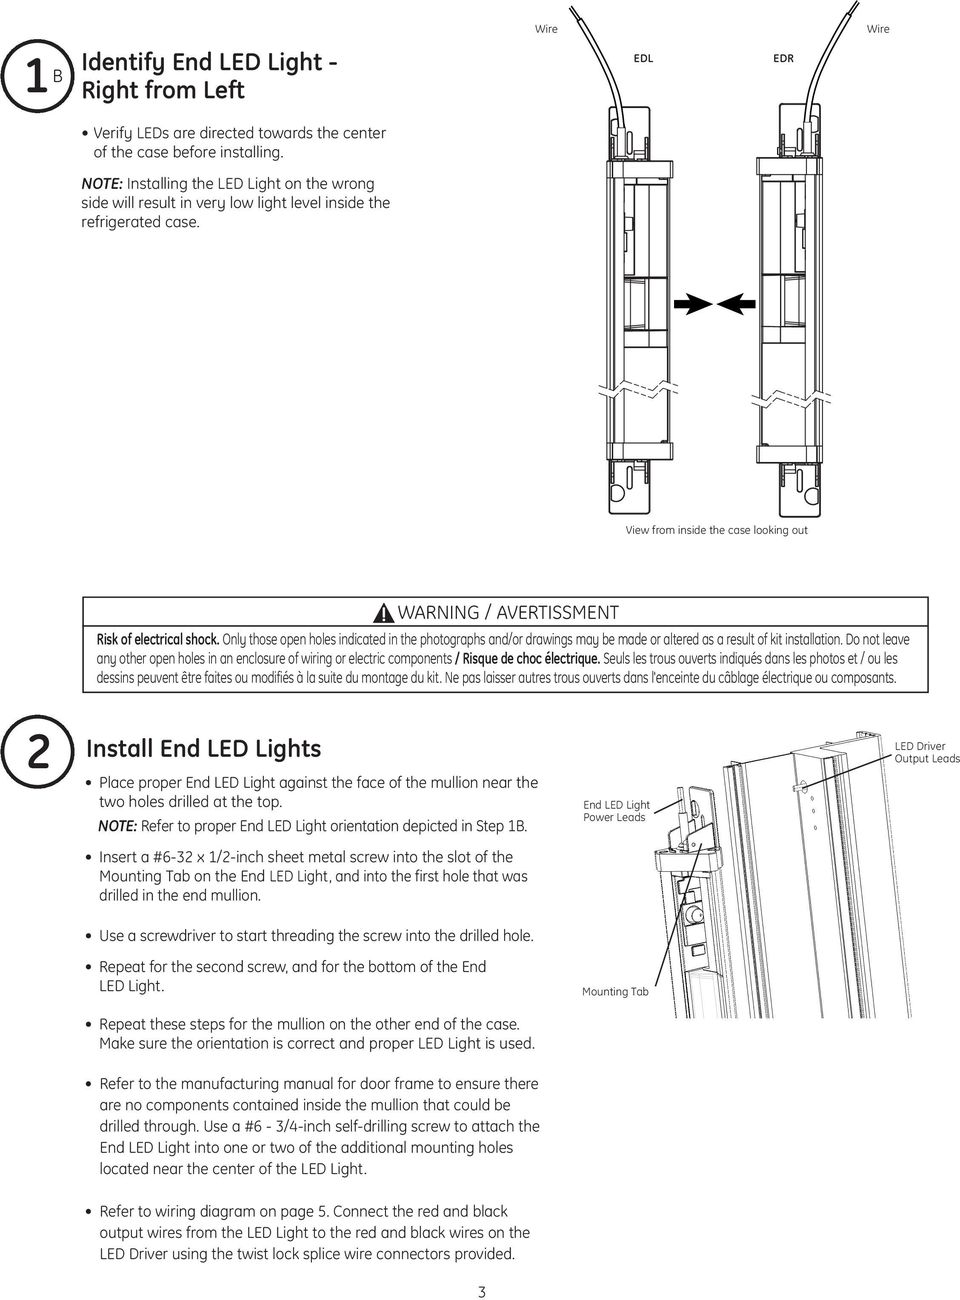 Immersion Oem Installation Guide Ge Lighting Imagination At Work Led Component Wiring Diagram Only Those Open Holes Indicated In The Photographs And Or Drawings May Be Made